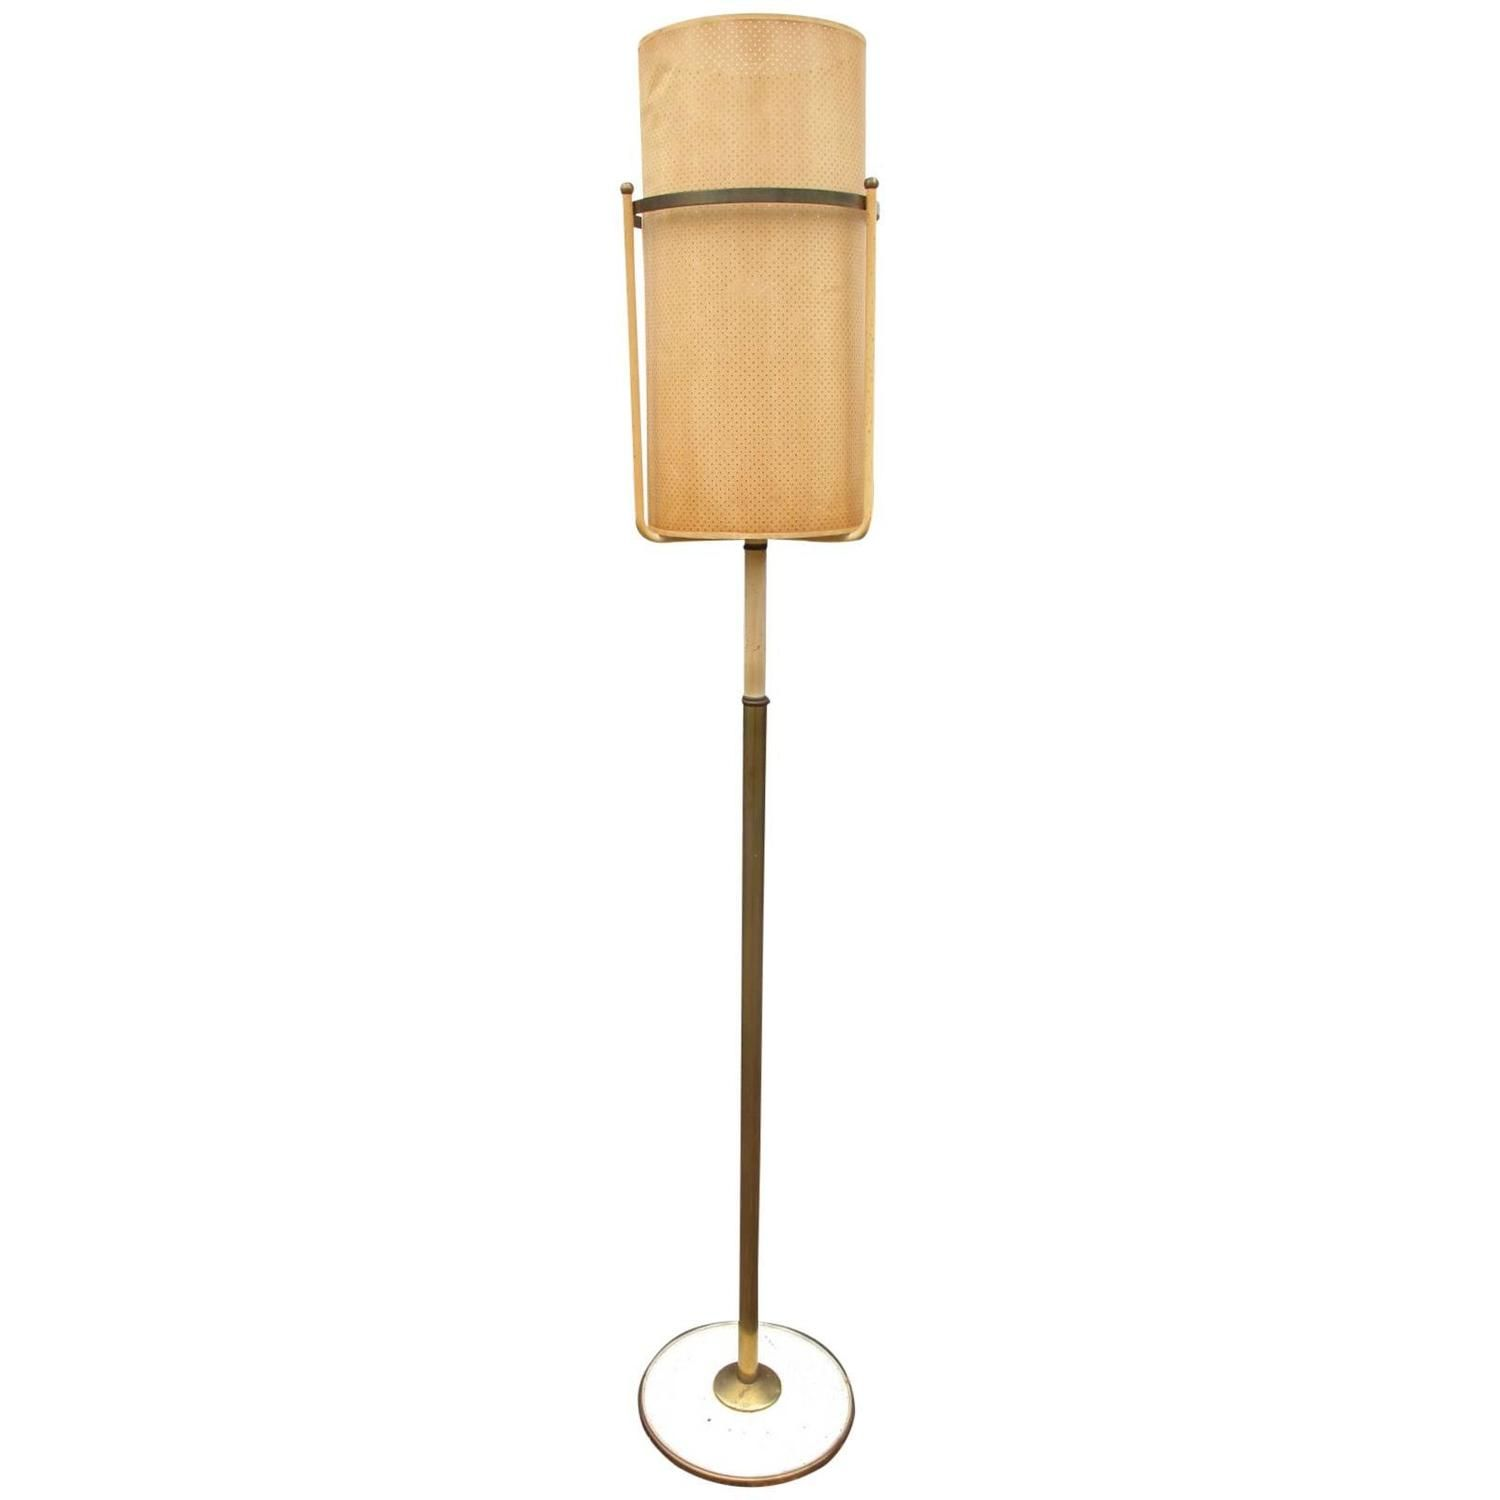 Paper Shade Floor Lamp New 20Th Century Floor Lamp With Perforated Paper Shade  Floor Lamp Review